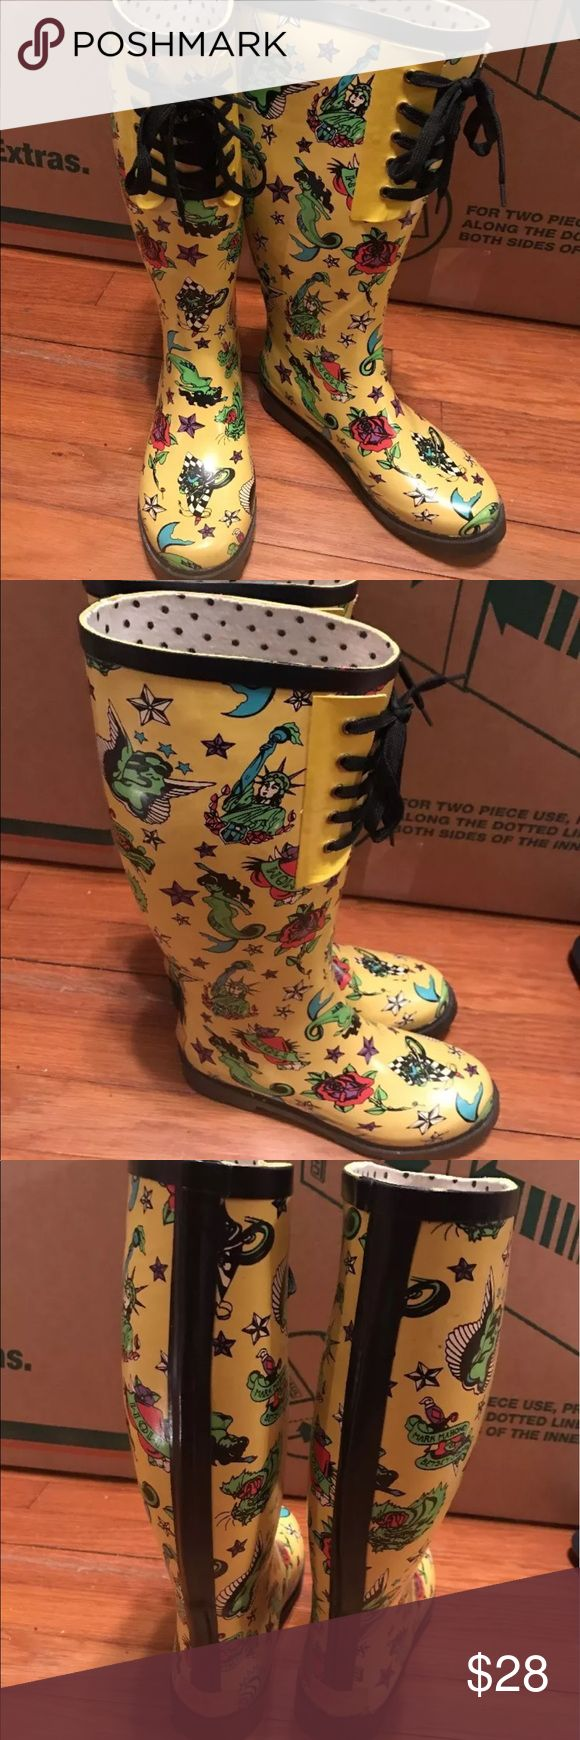 Betsey Johnson tattoo yellow rain boots lace up 7 Size 7 - overall good condition- has scruffs on the back of the shoe as shown in pictures- size 7 Betsey Johnson Shoes Winter & Rain Boots